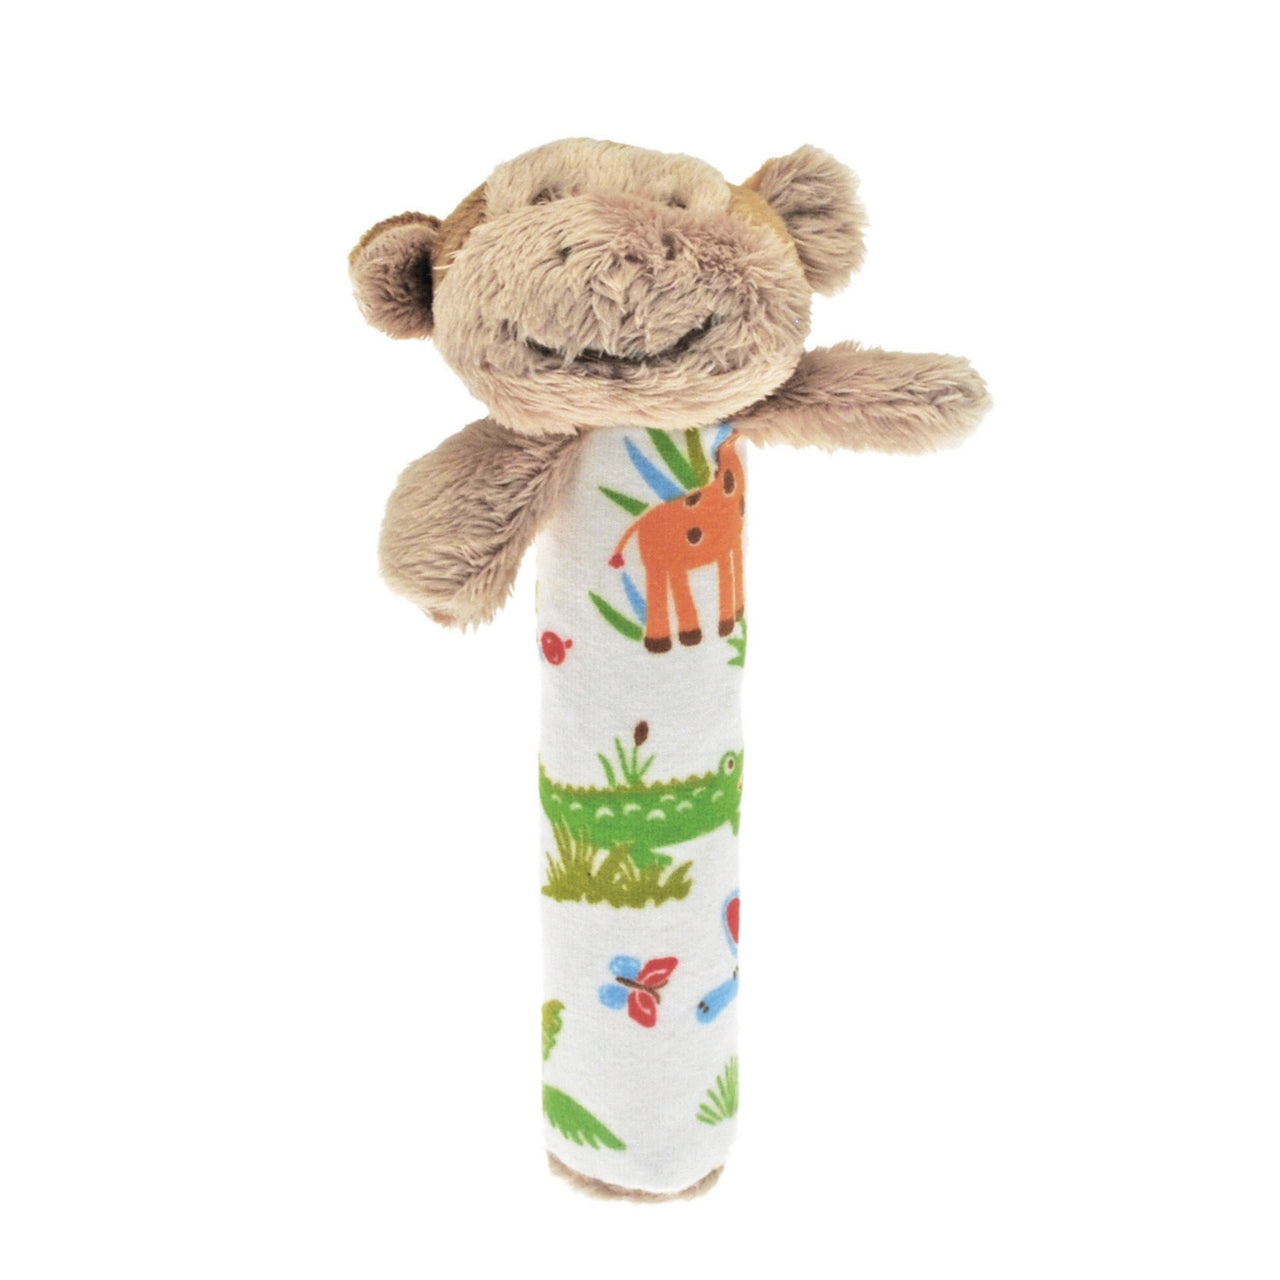 Mungo the Monkey Baby Rattle - Rooms for Rascals